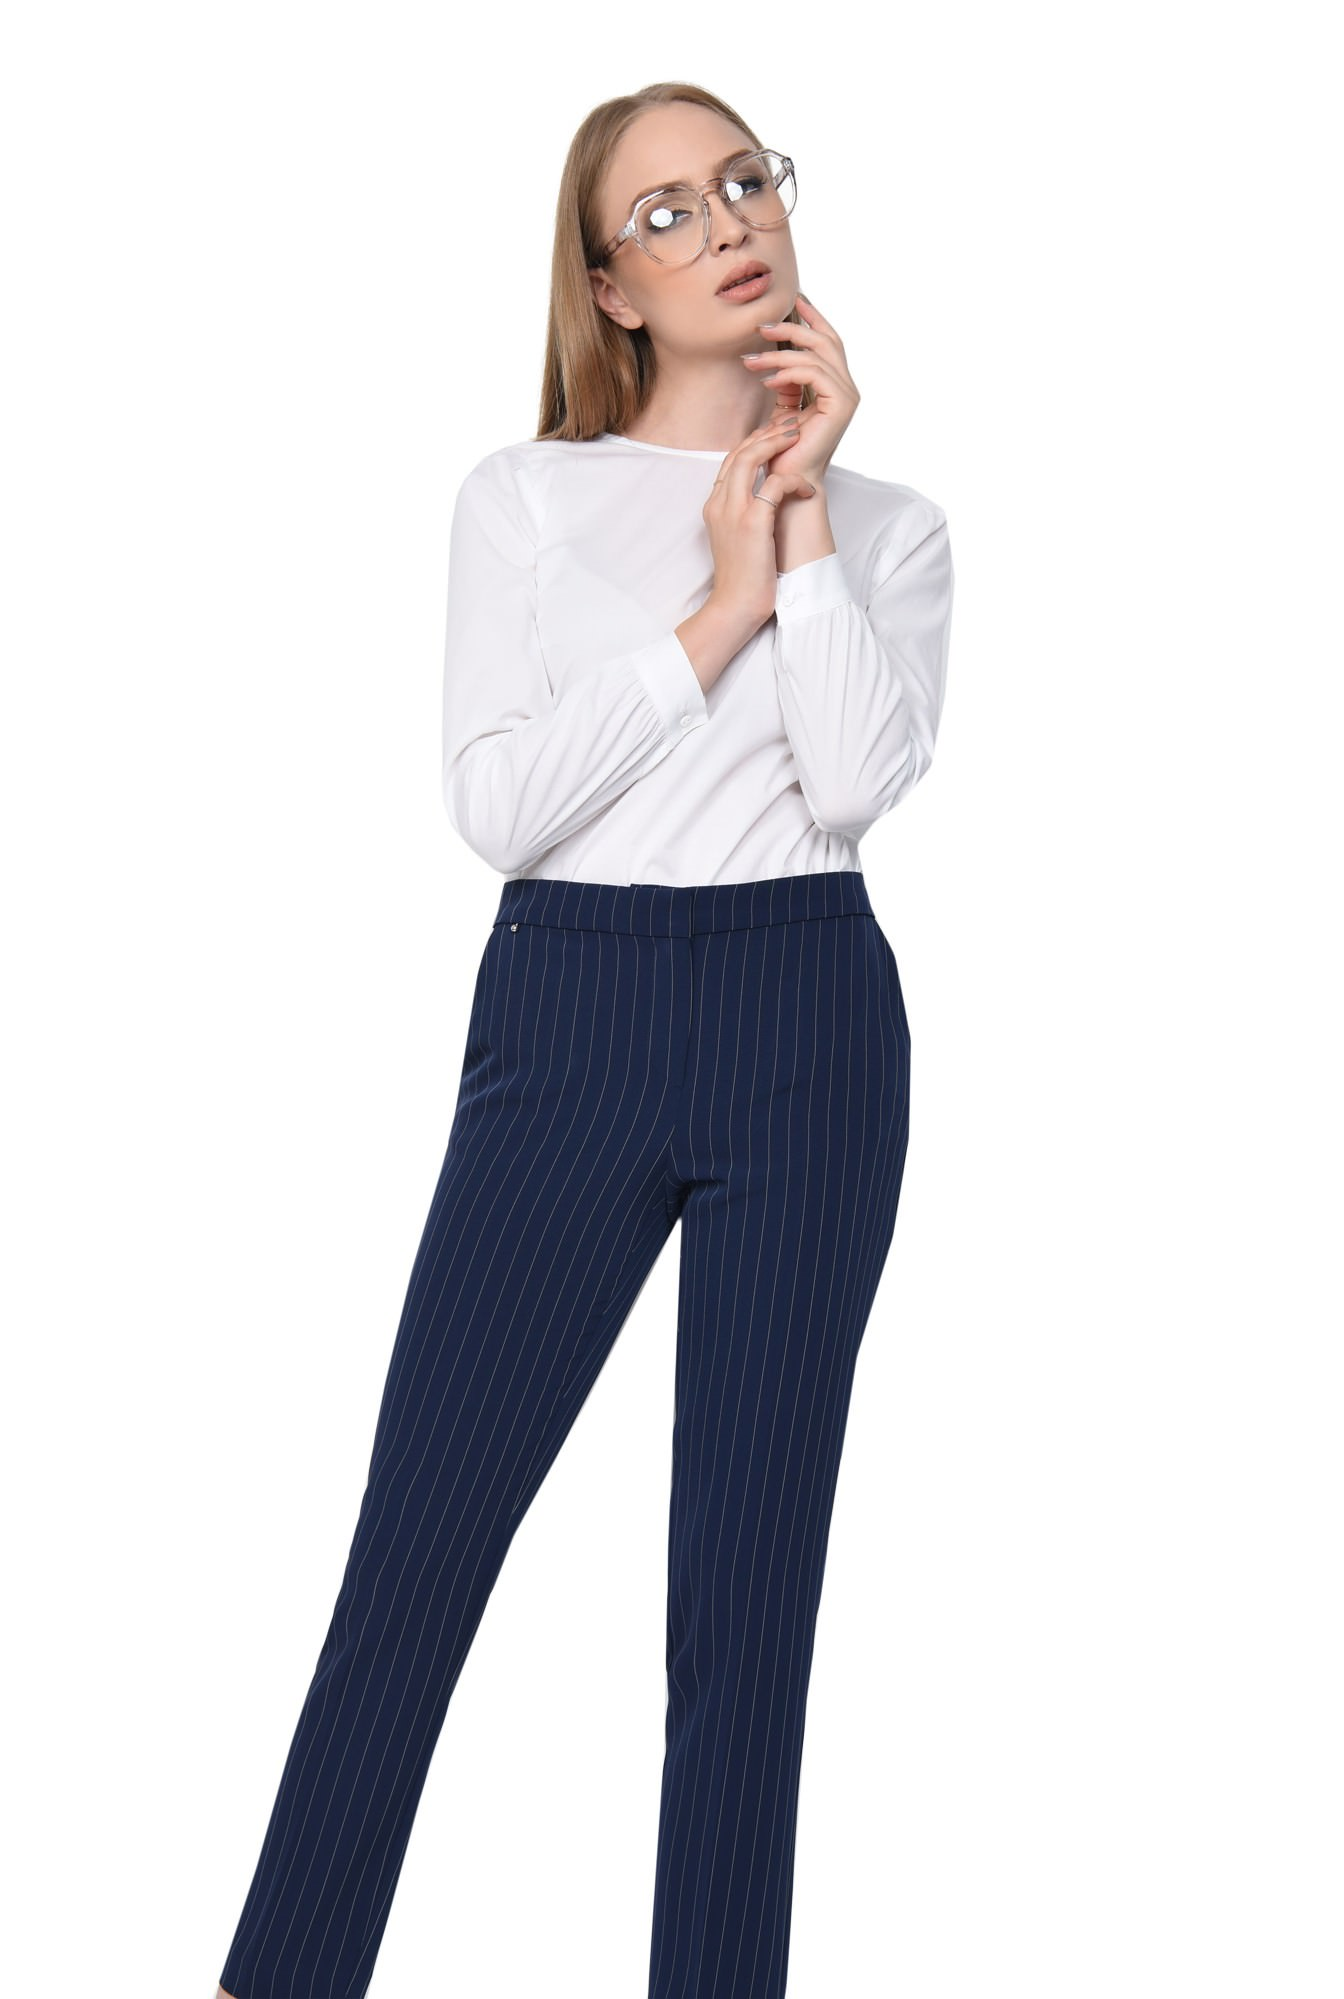 PANTALON OFFICE PT 164-BLEUMARIN